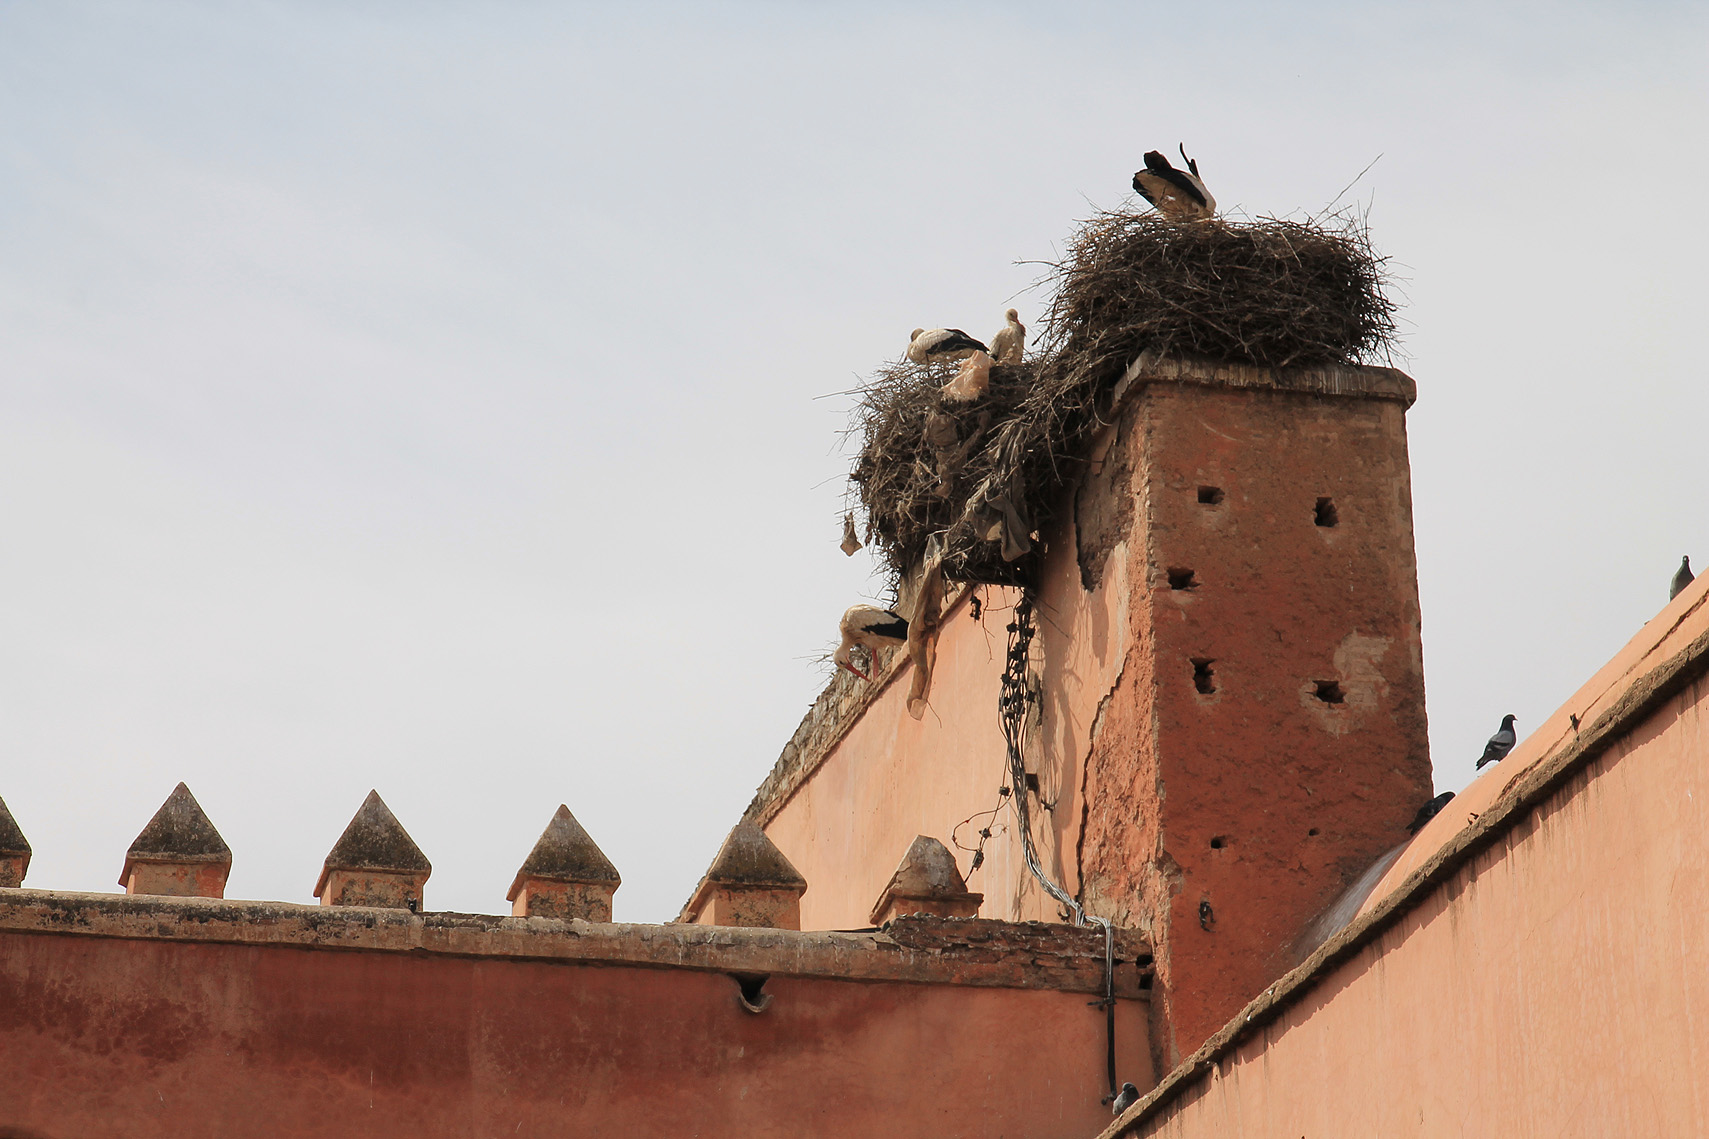 Storks on the city walls.